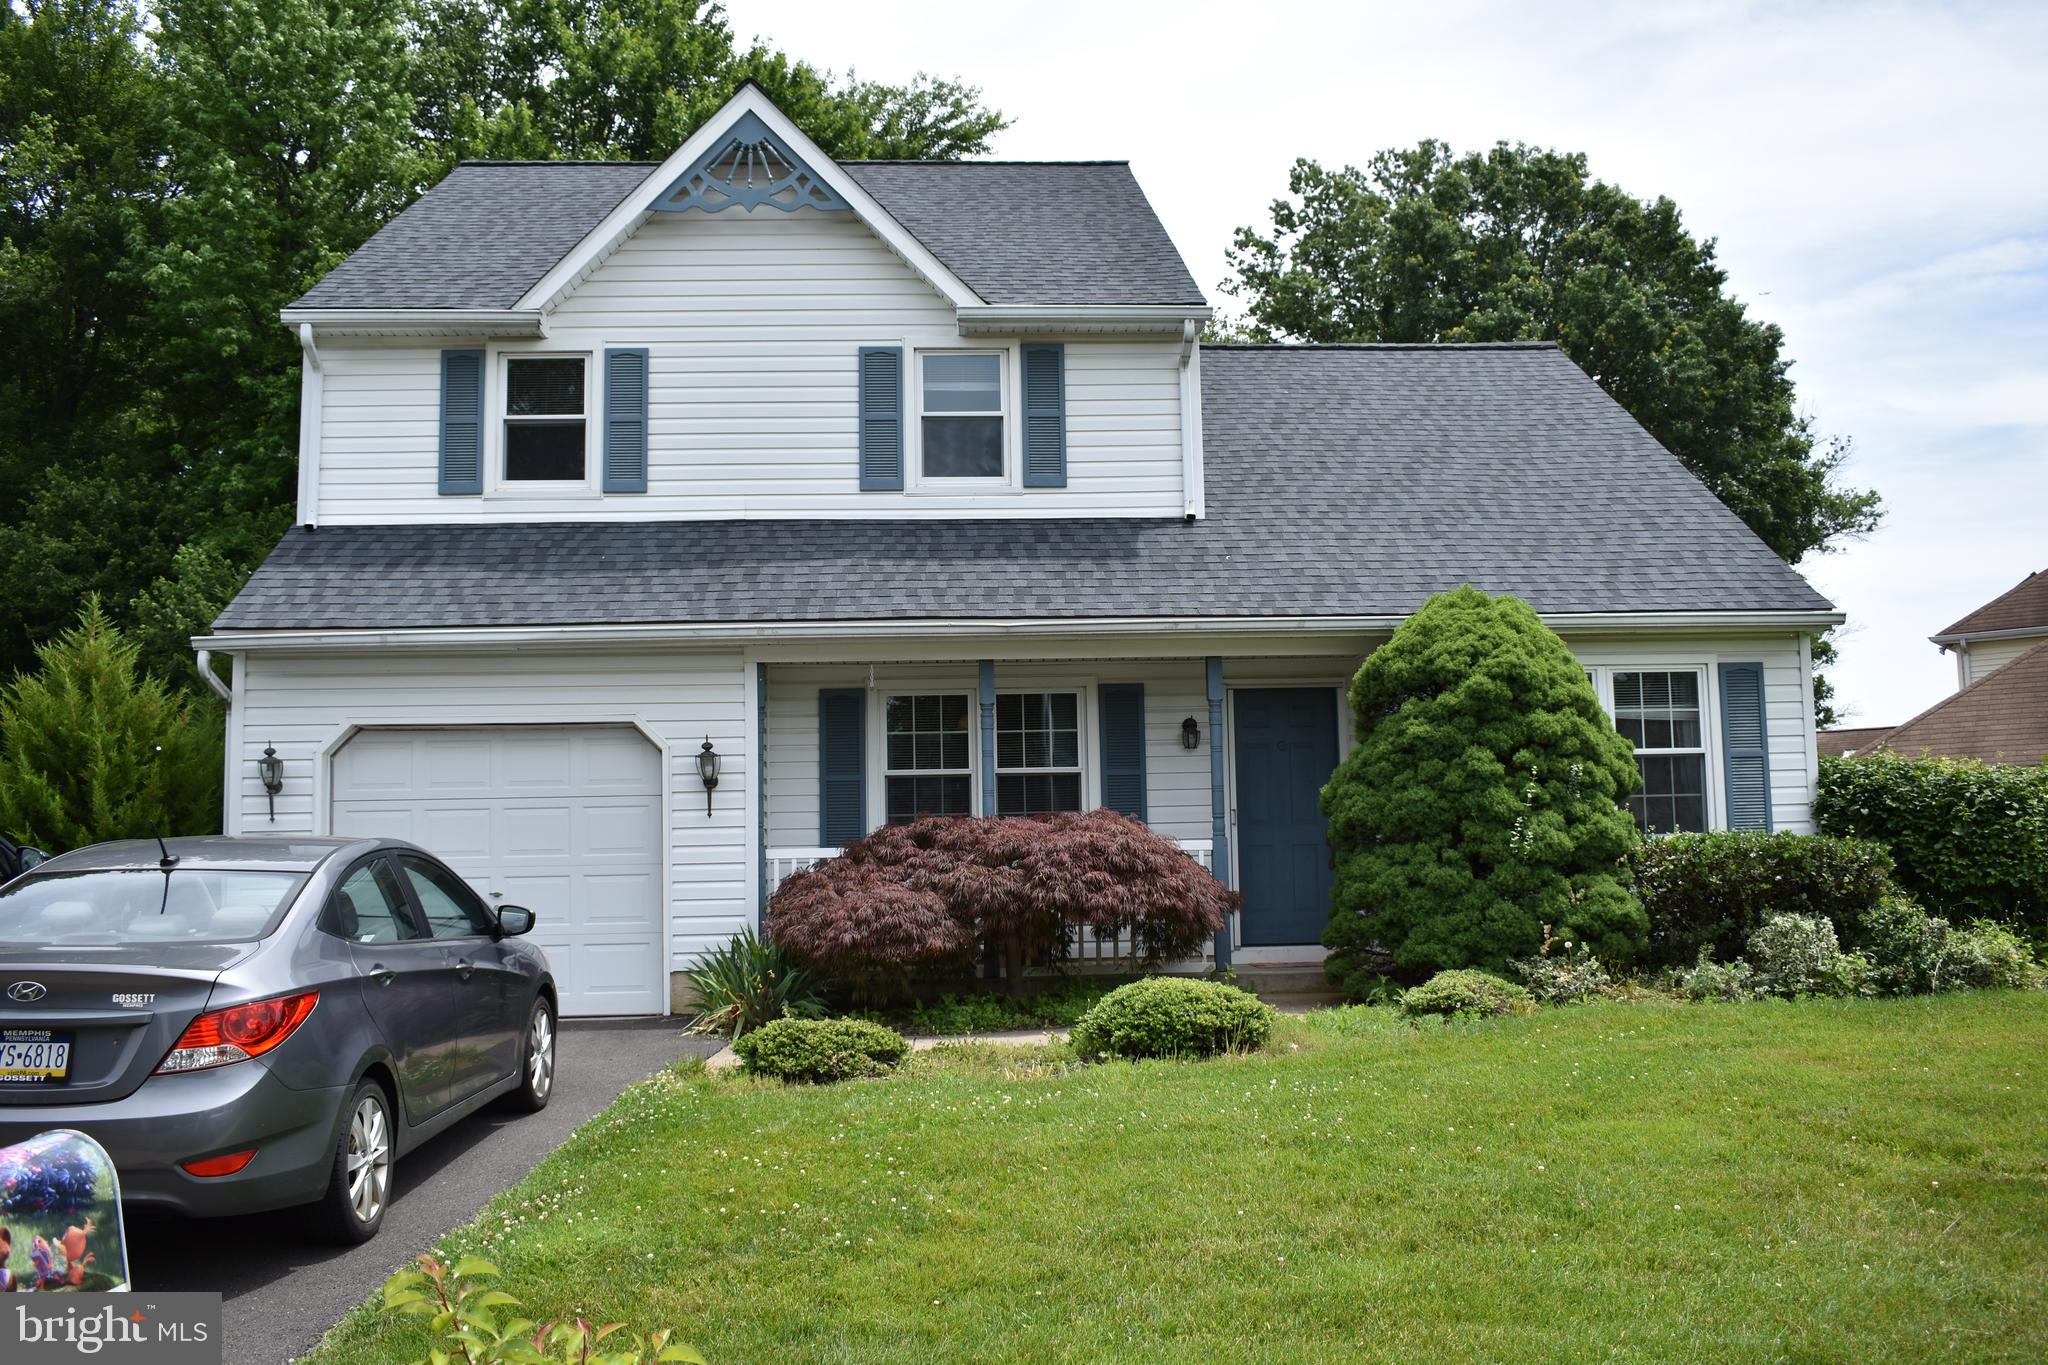 547 STANFORD ROAD, FAIRLESS HILLS, PA 19030